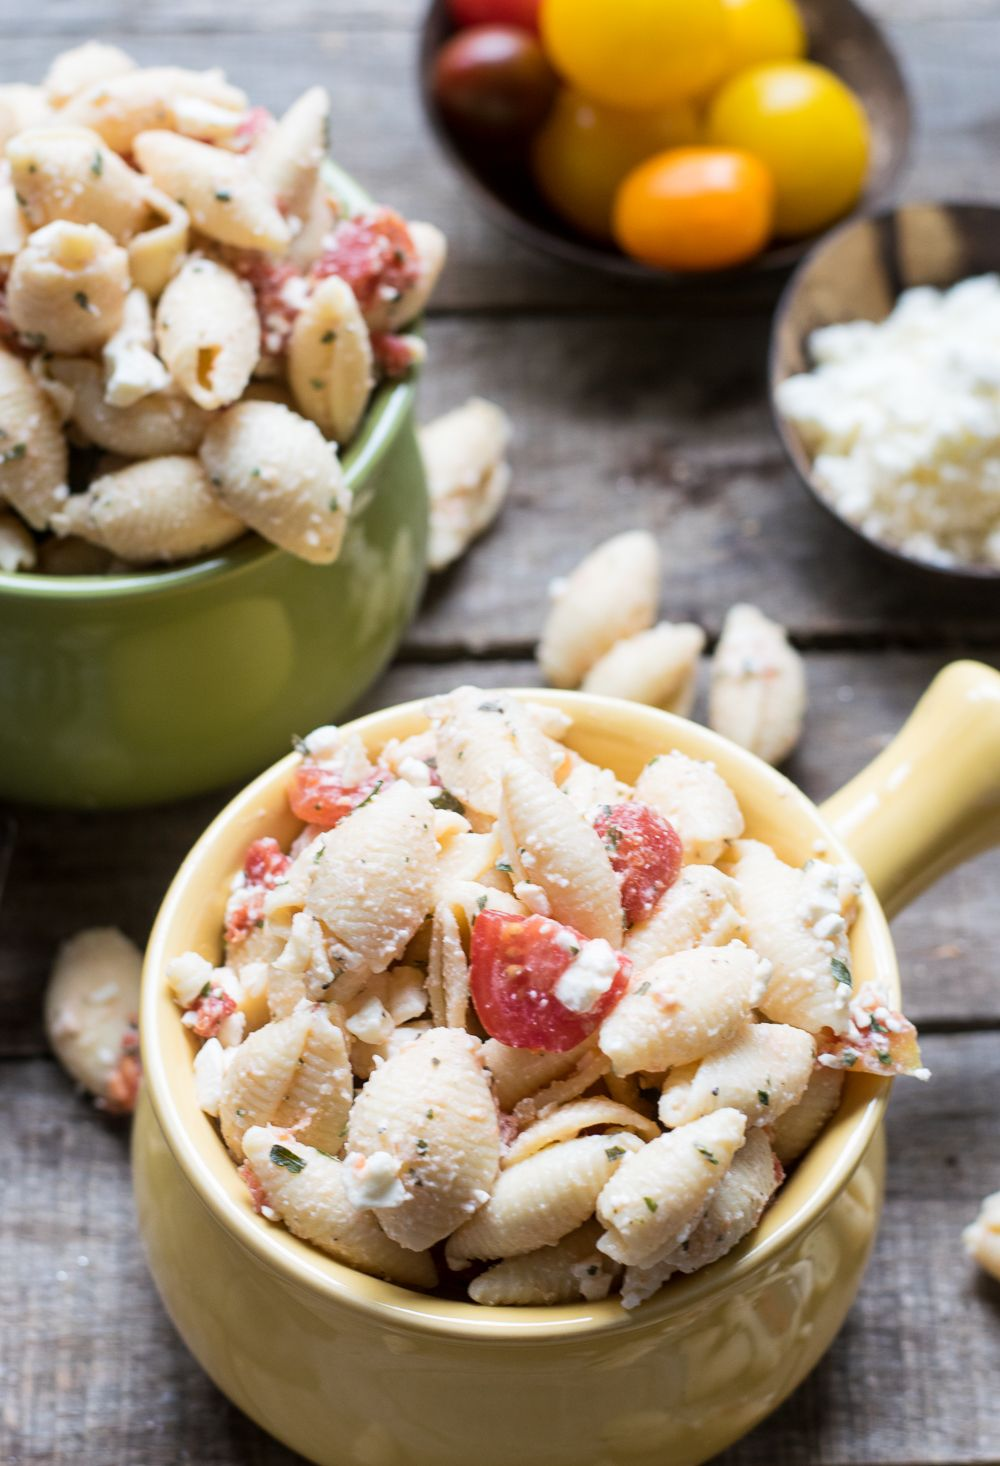 Zoes Kitchen zoe's kitchen pasta salad | recipe | pasta salad, picnics and pasta